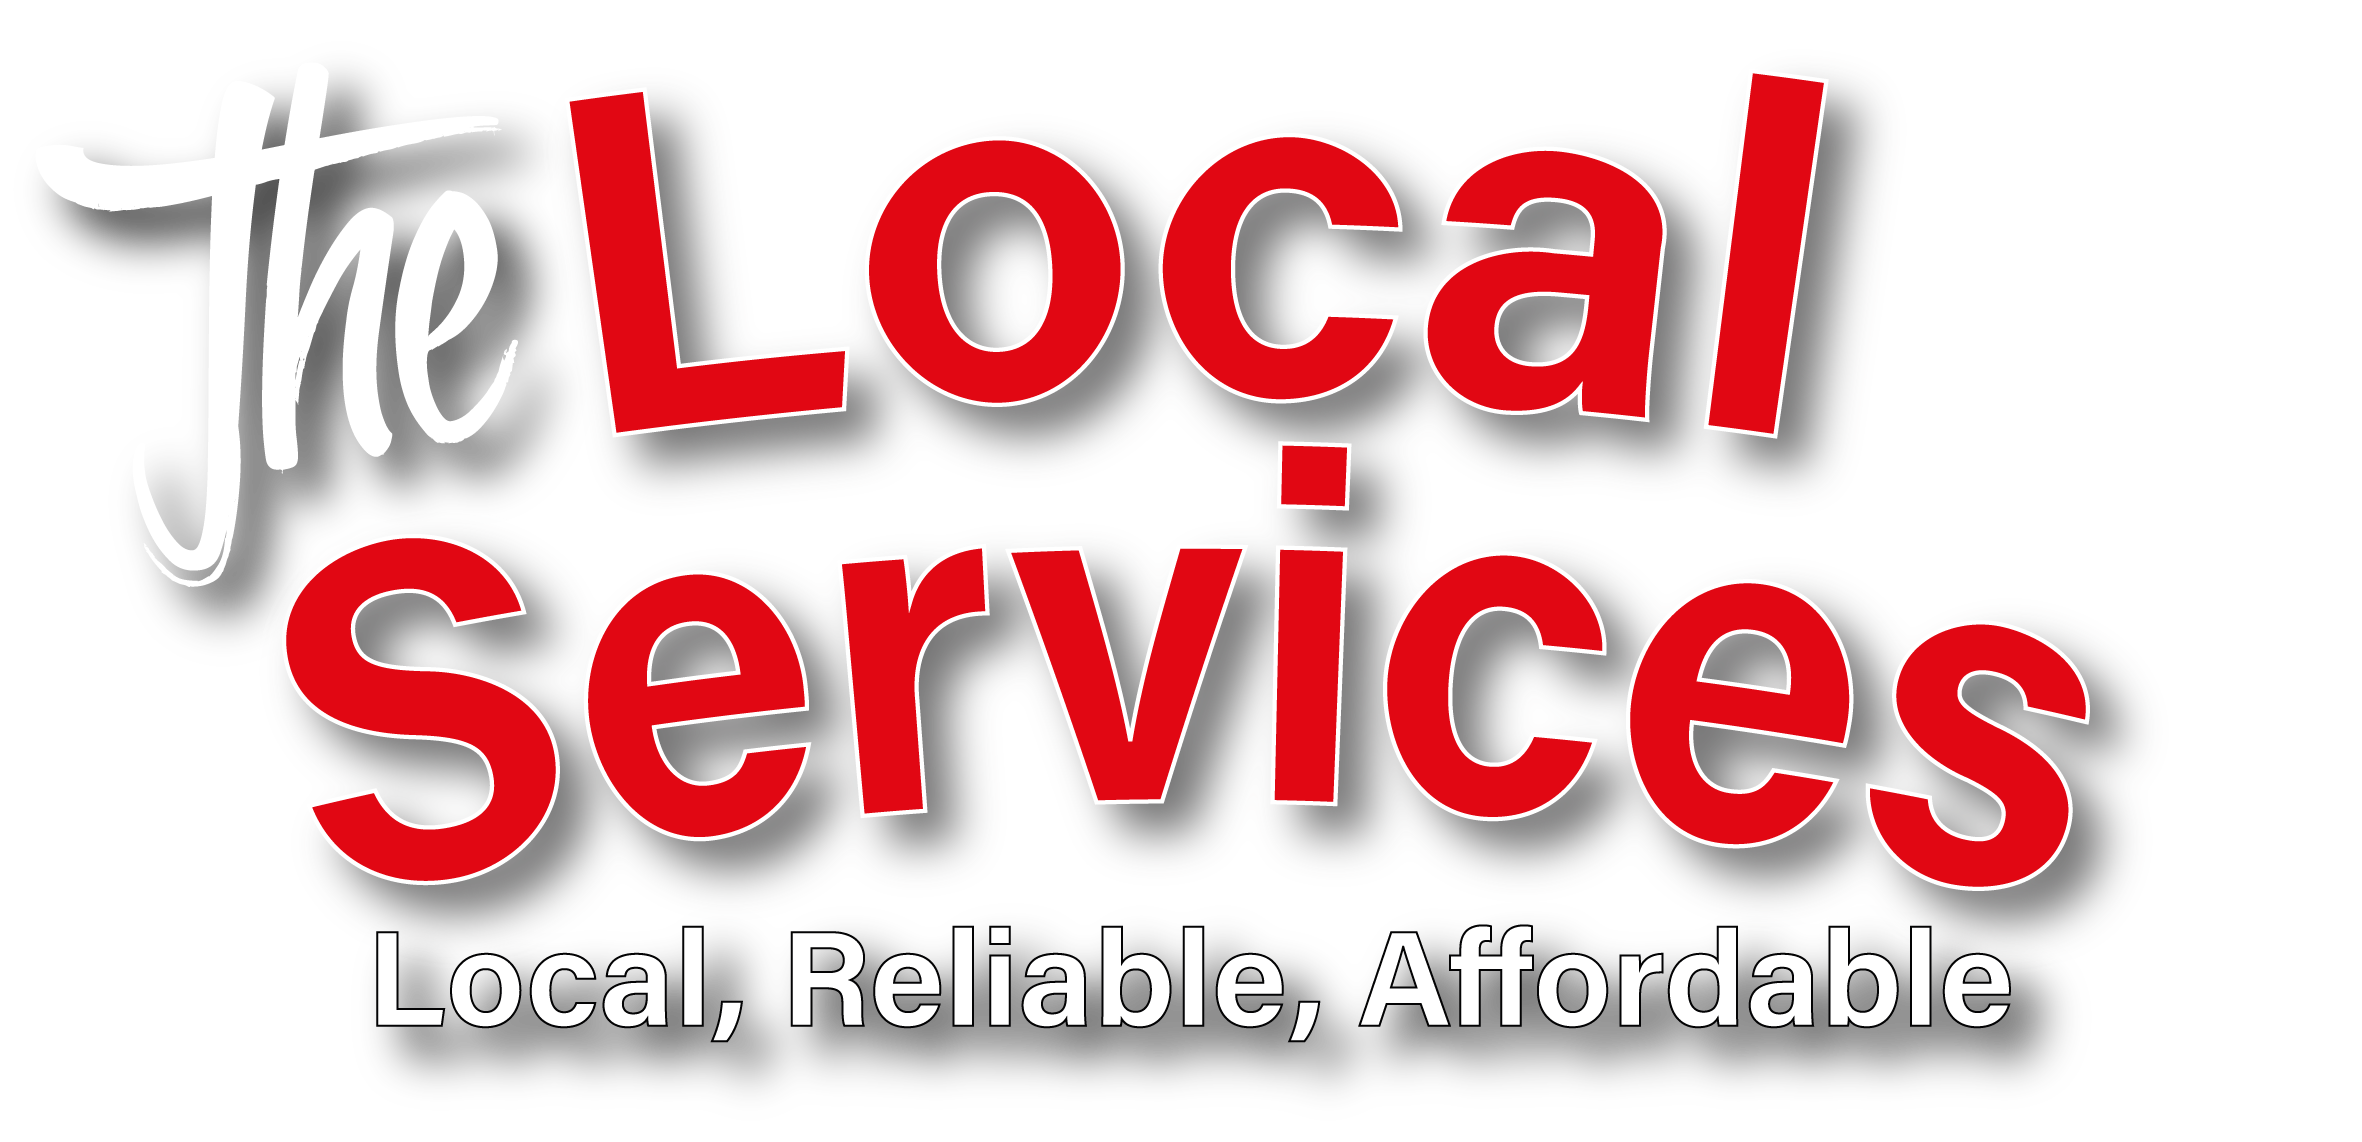 The local services logo